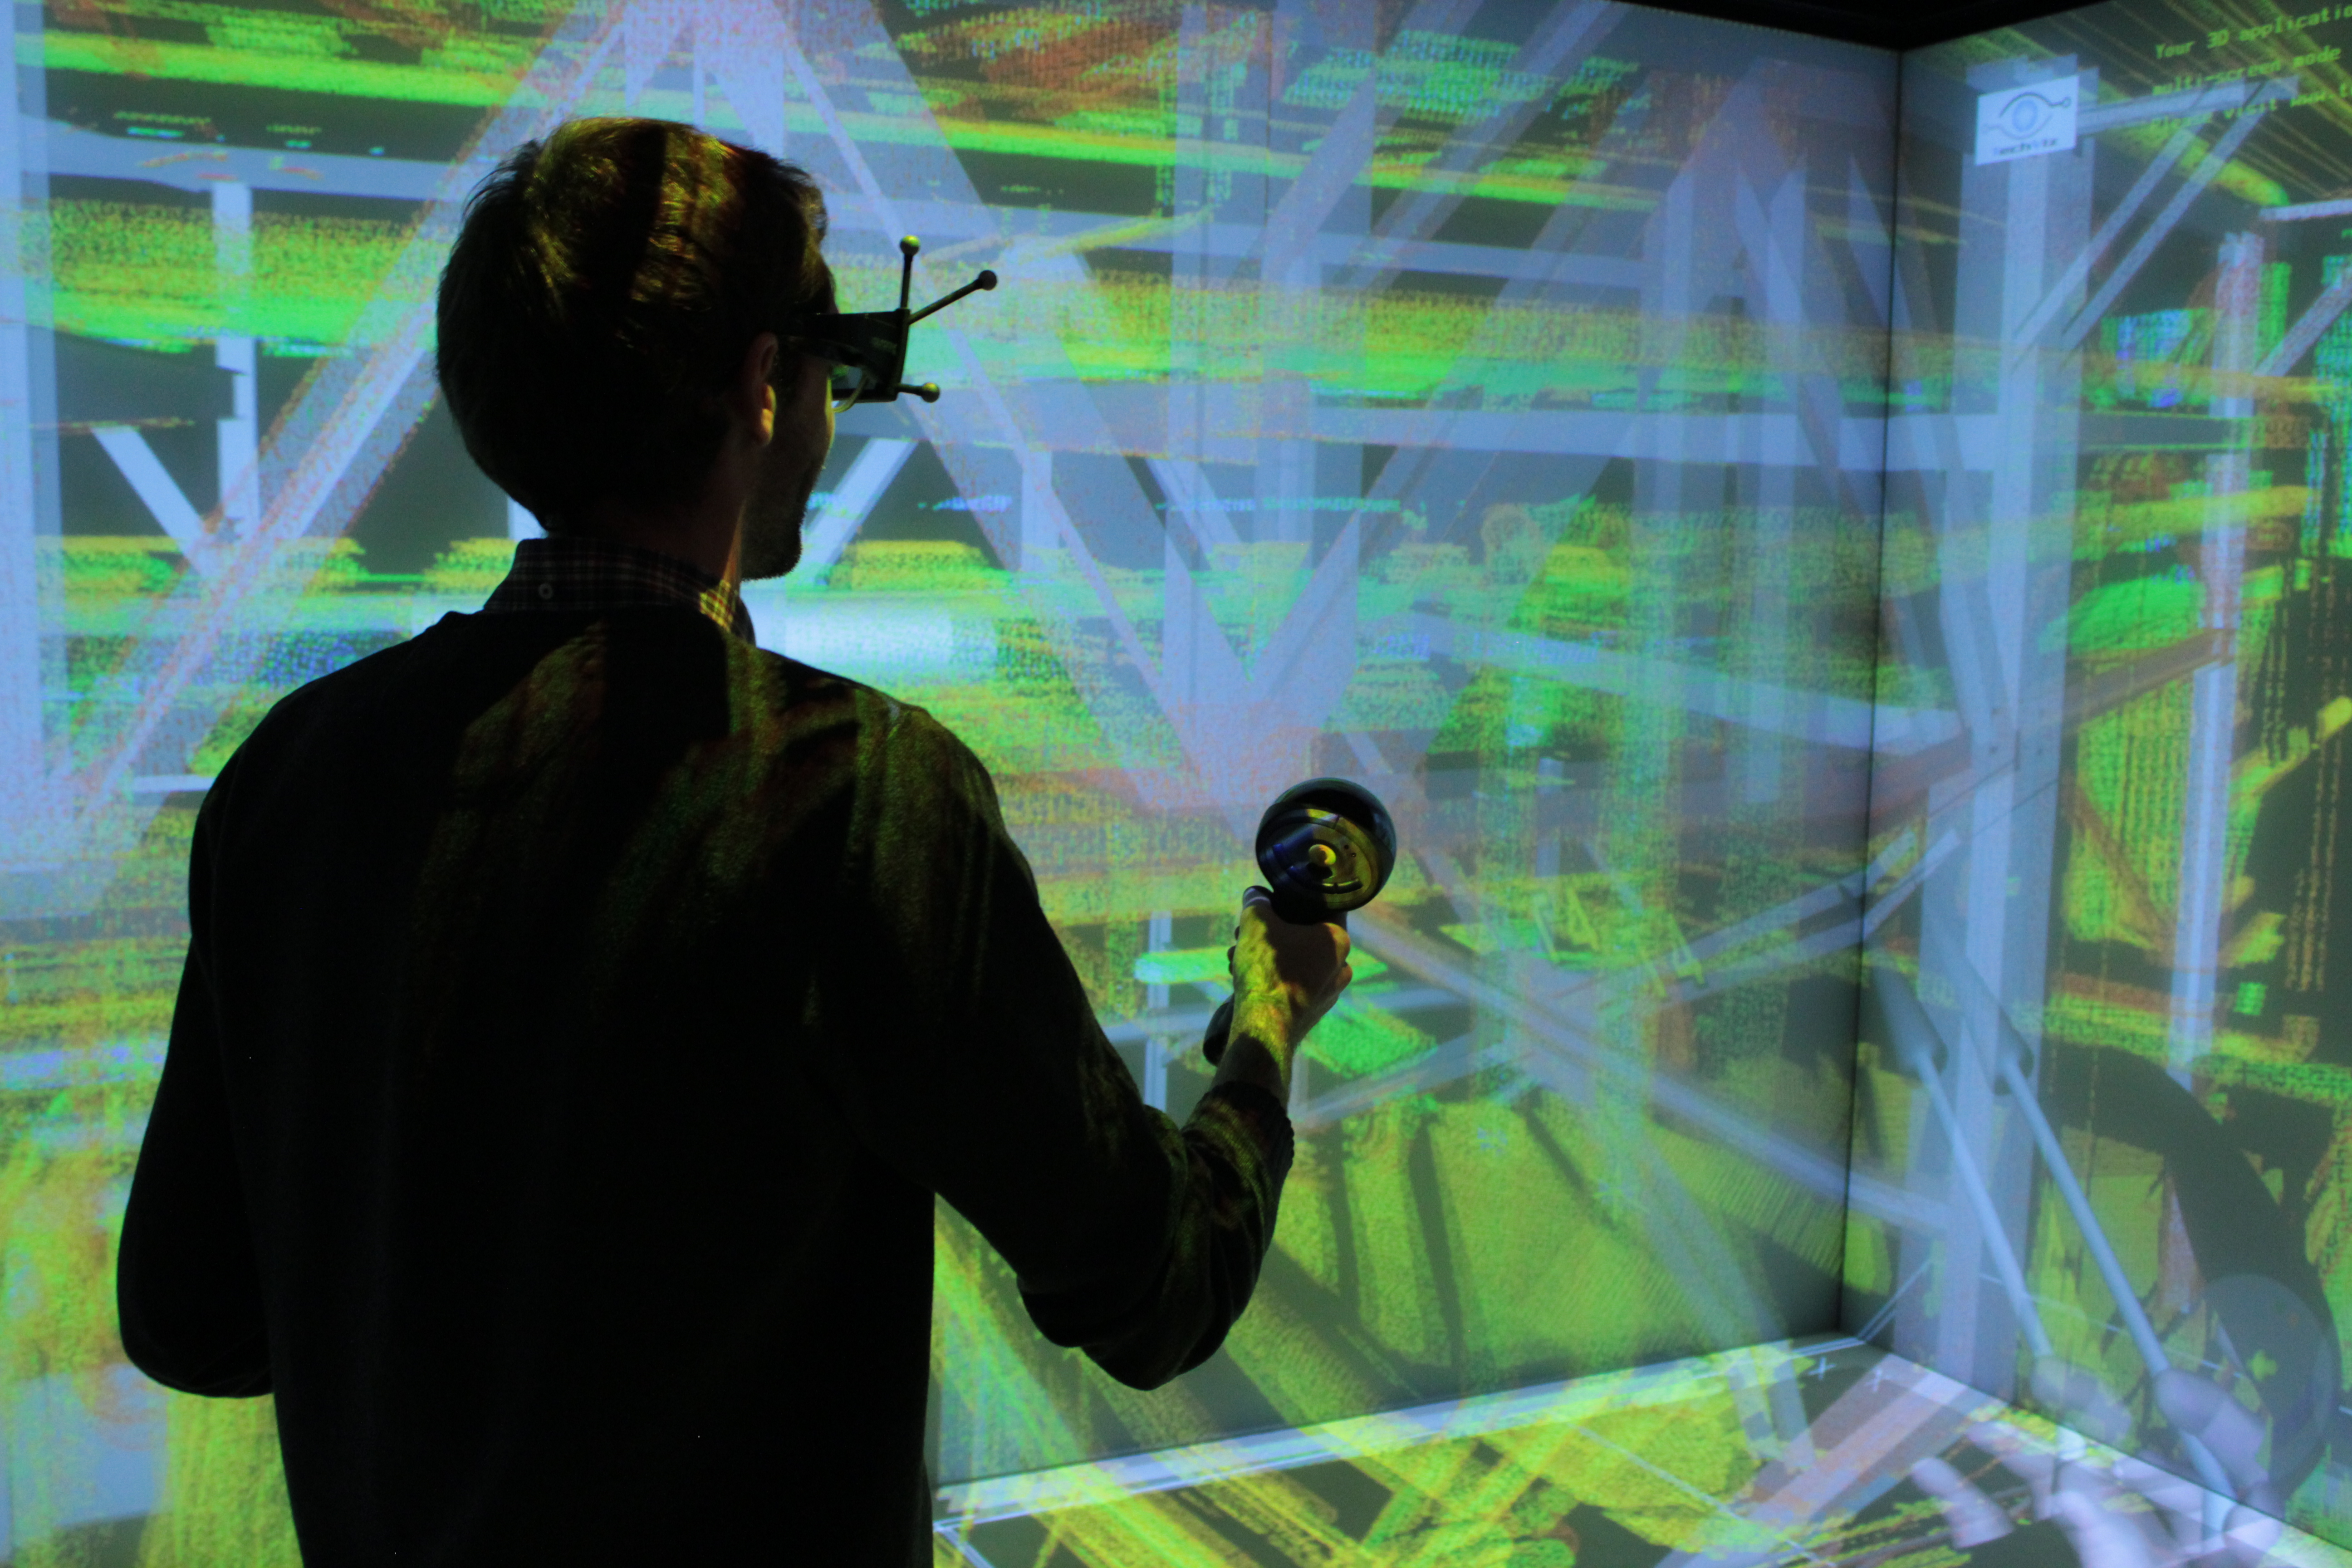 man navigating a point cloud in virtual reality